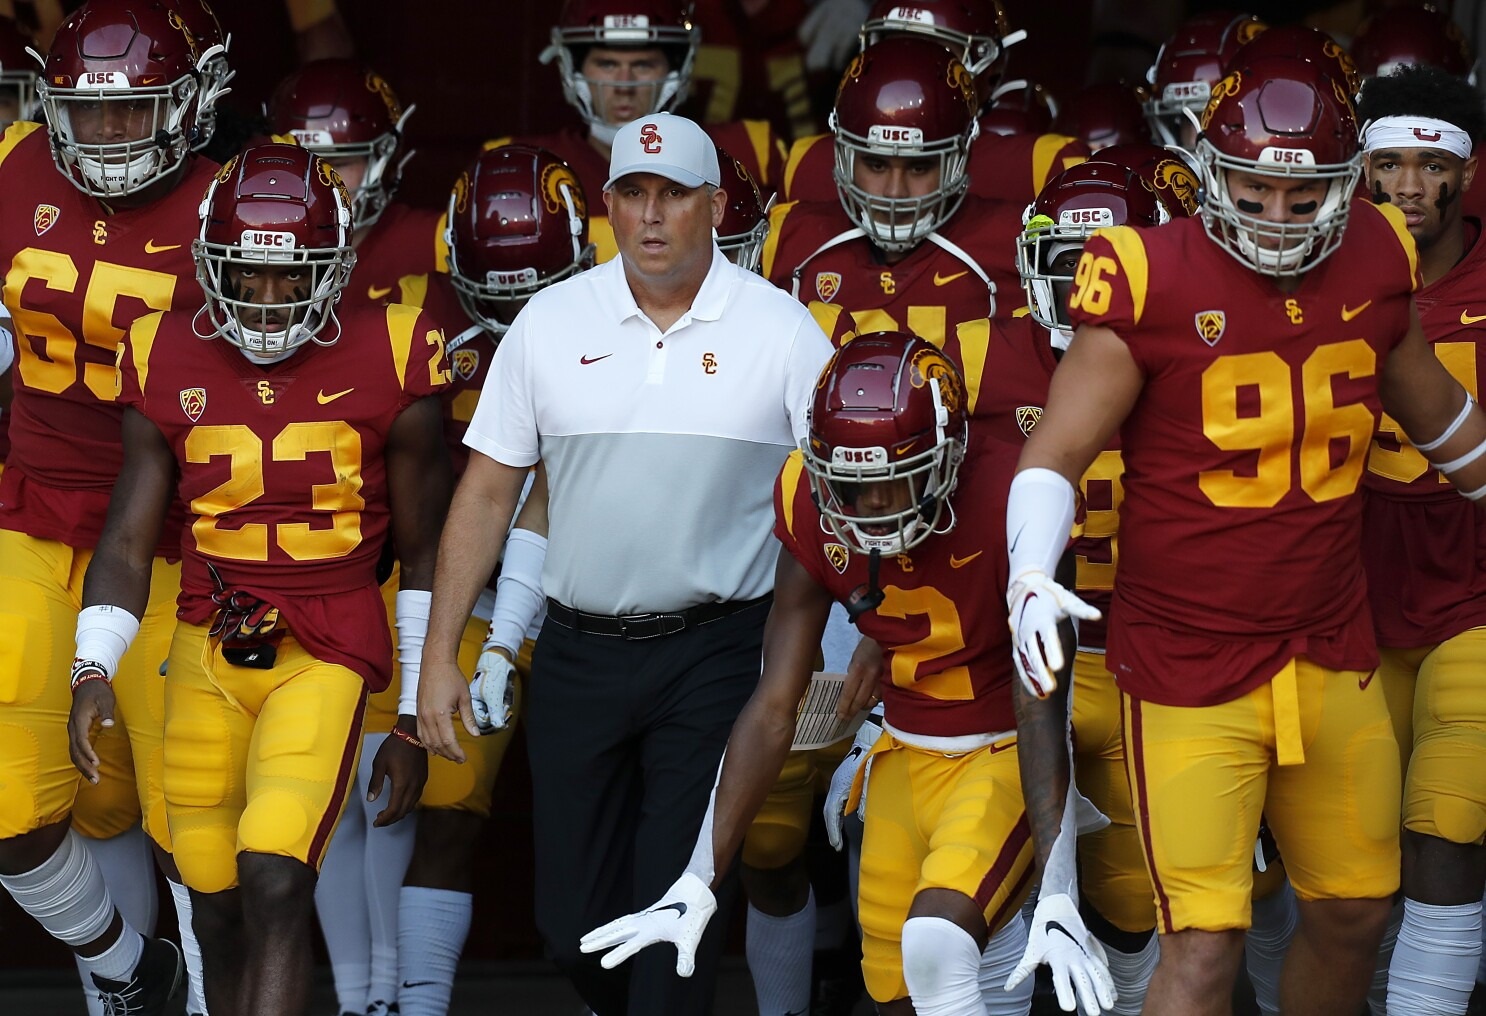 Usc Football To Play Iowa In The Holiday Bowl On Dec 27 Los Angeles Times